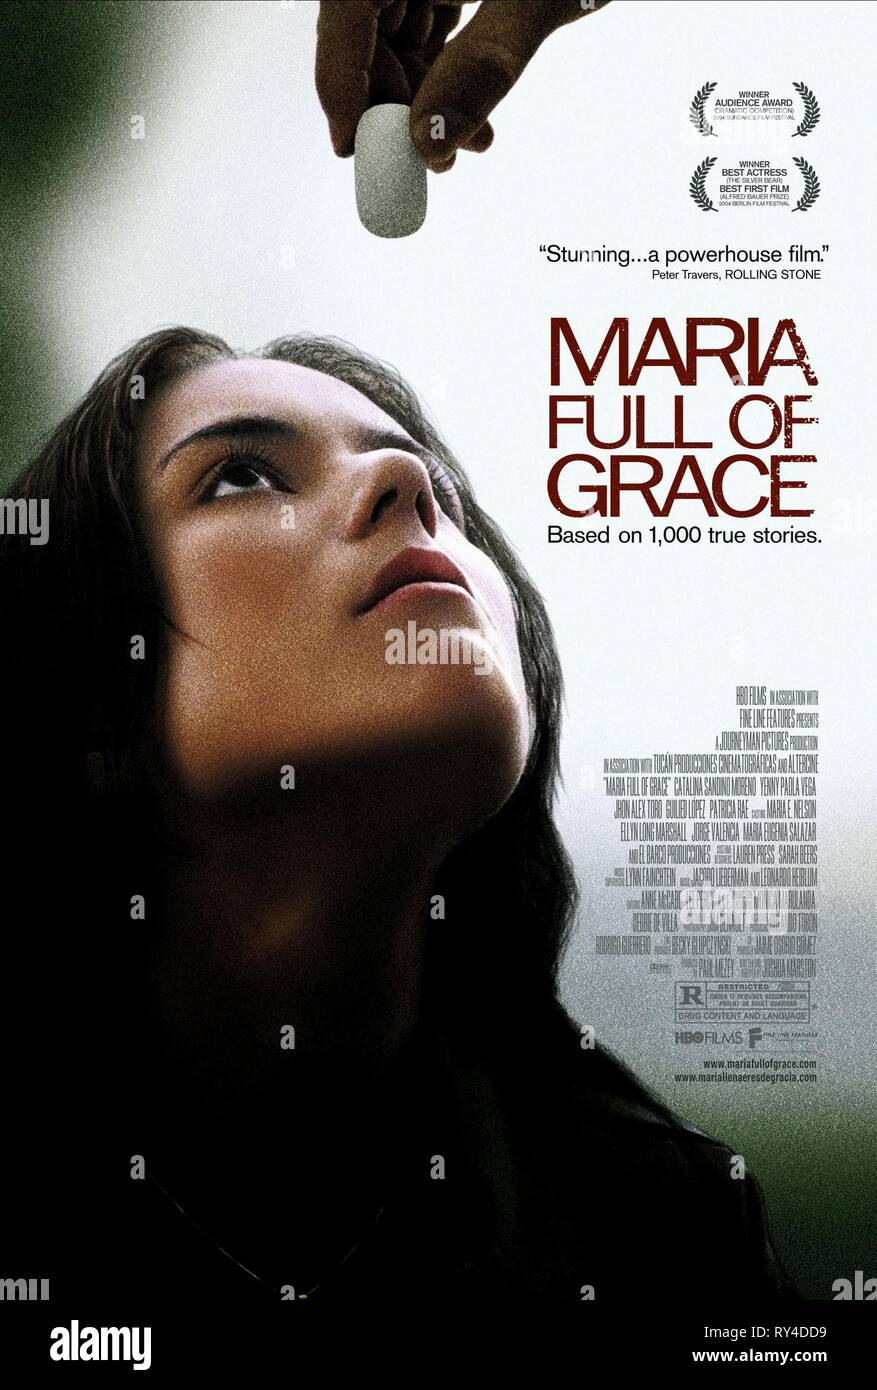 CATALINA SANDINO MORENO, MARIA FULL OF GRACE, 2004 Stock Photo